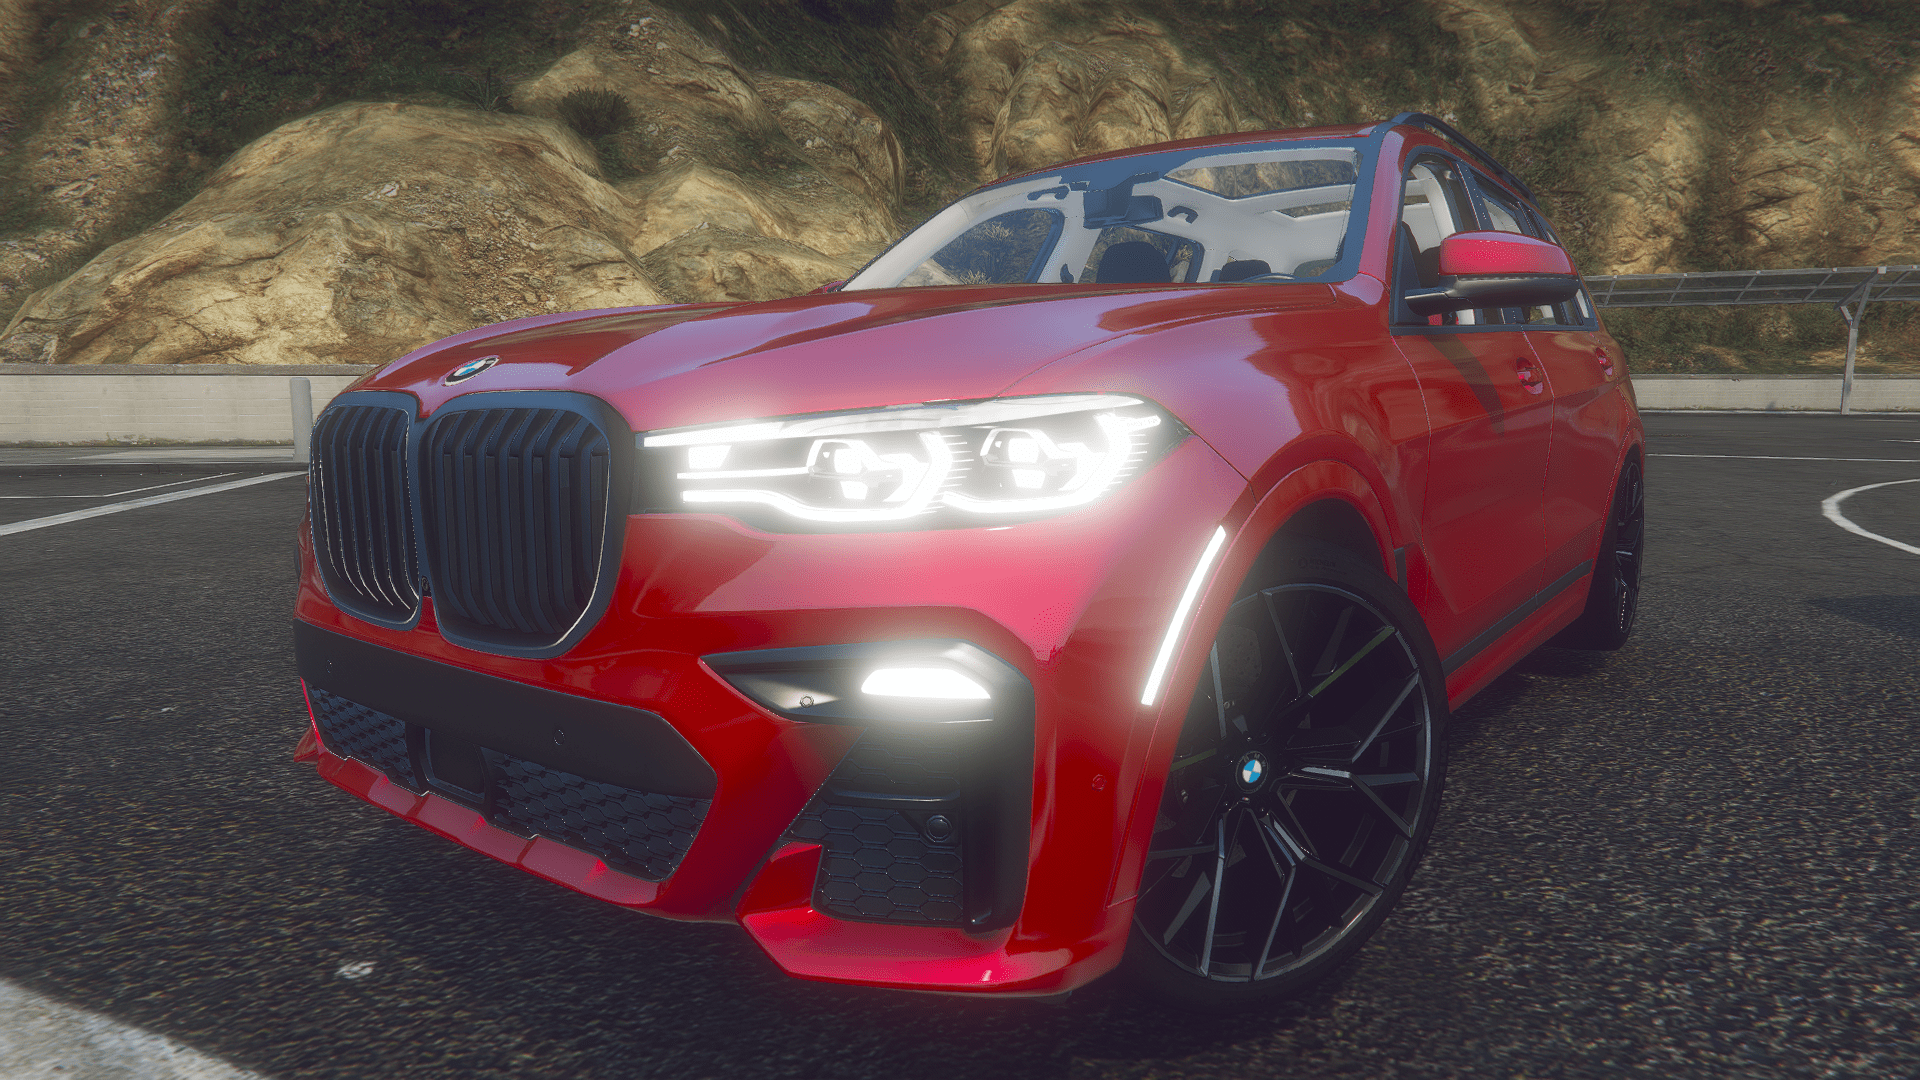 Bmw X7 2020 M50d Add On Gta5 Mods Com